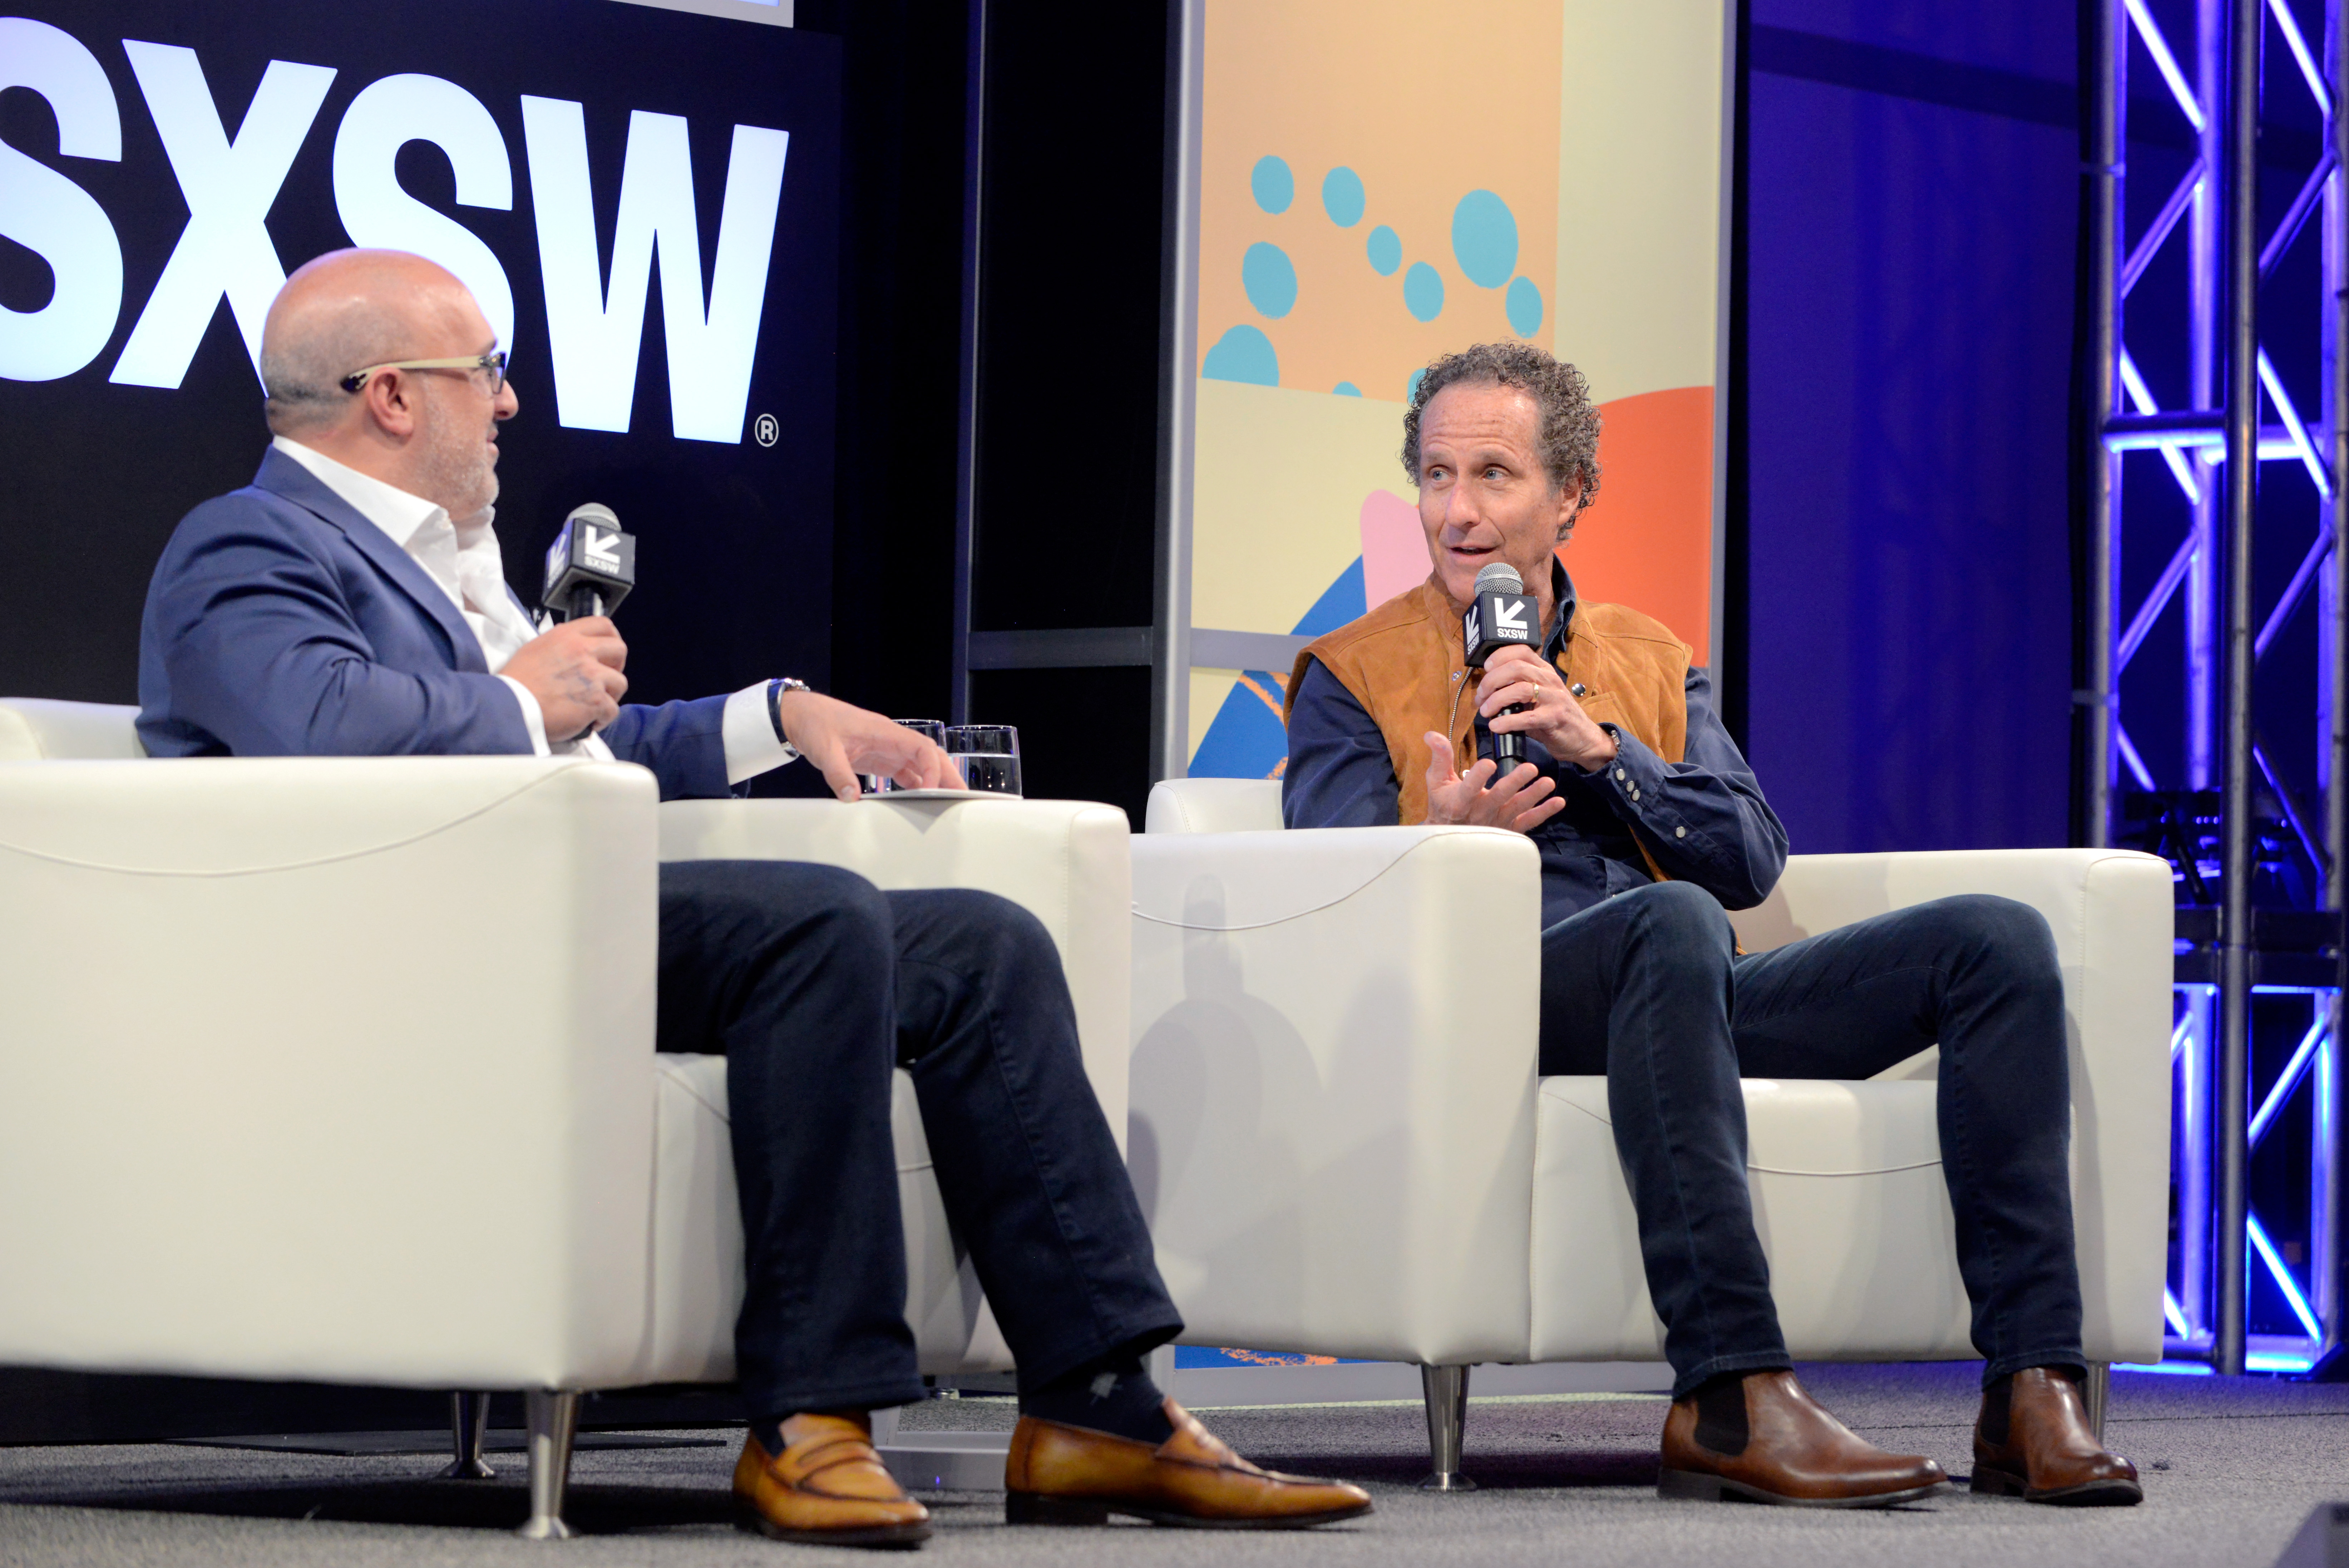 Aryeh Bourkoff and Daniel Glass speak onstage during SXSW at Austin Convention Center on March 15, 2018 in Austin, Texas. (Photo by Nicola Gell/Getty Images for SXSW